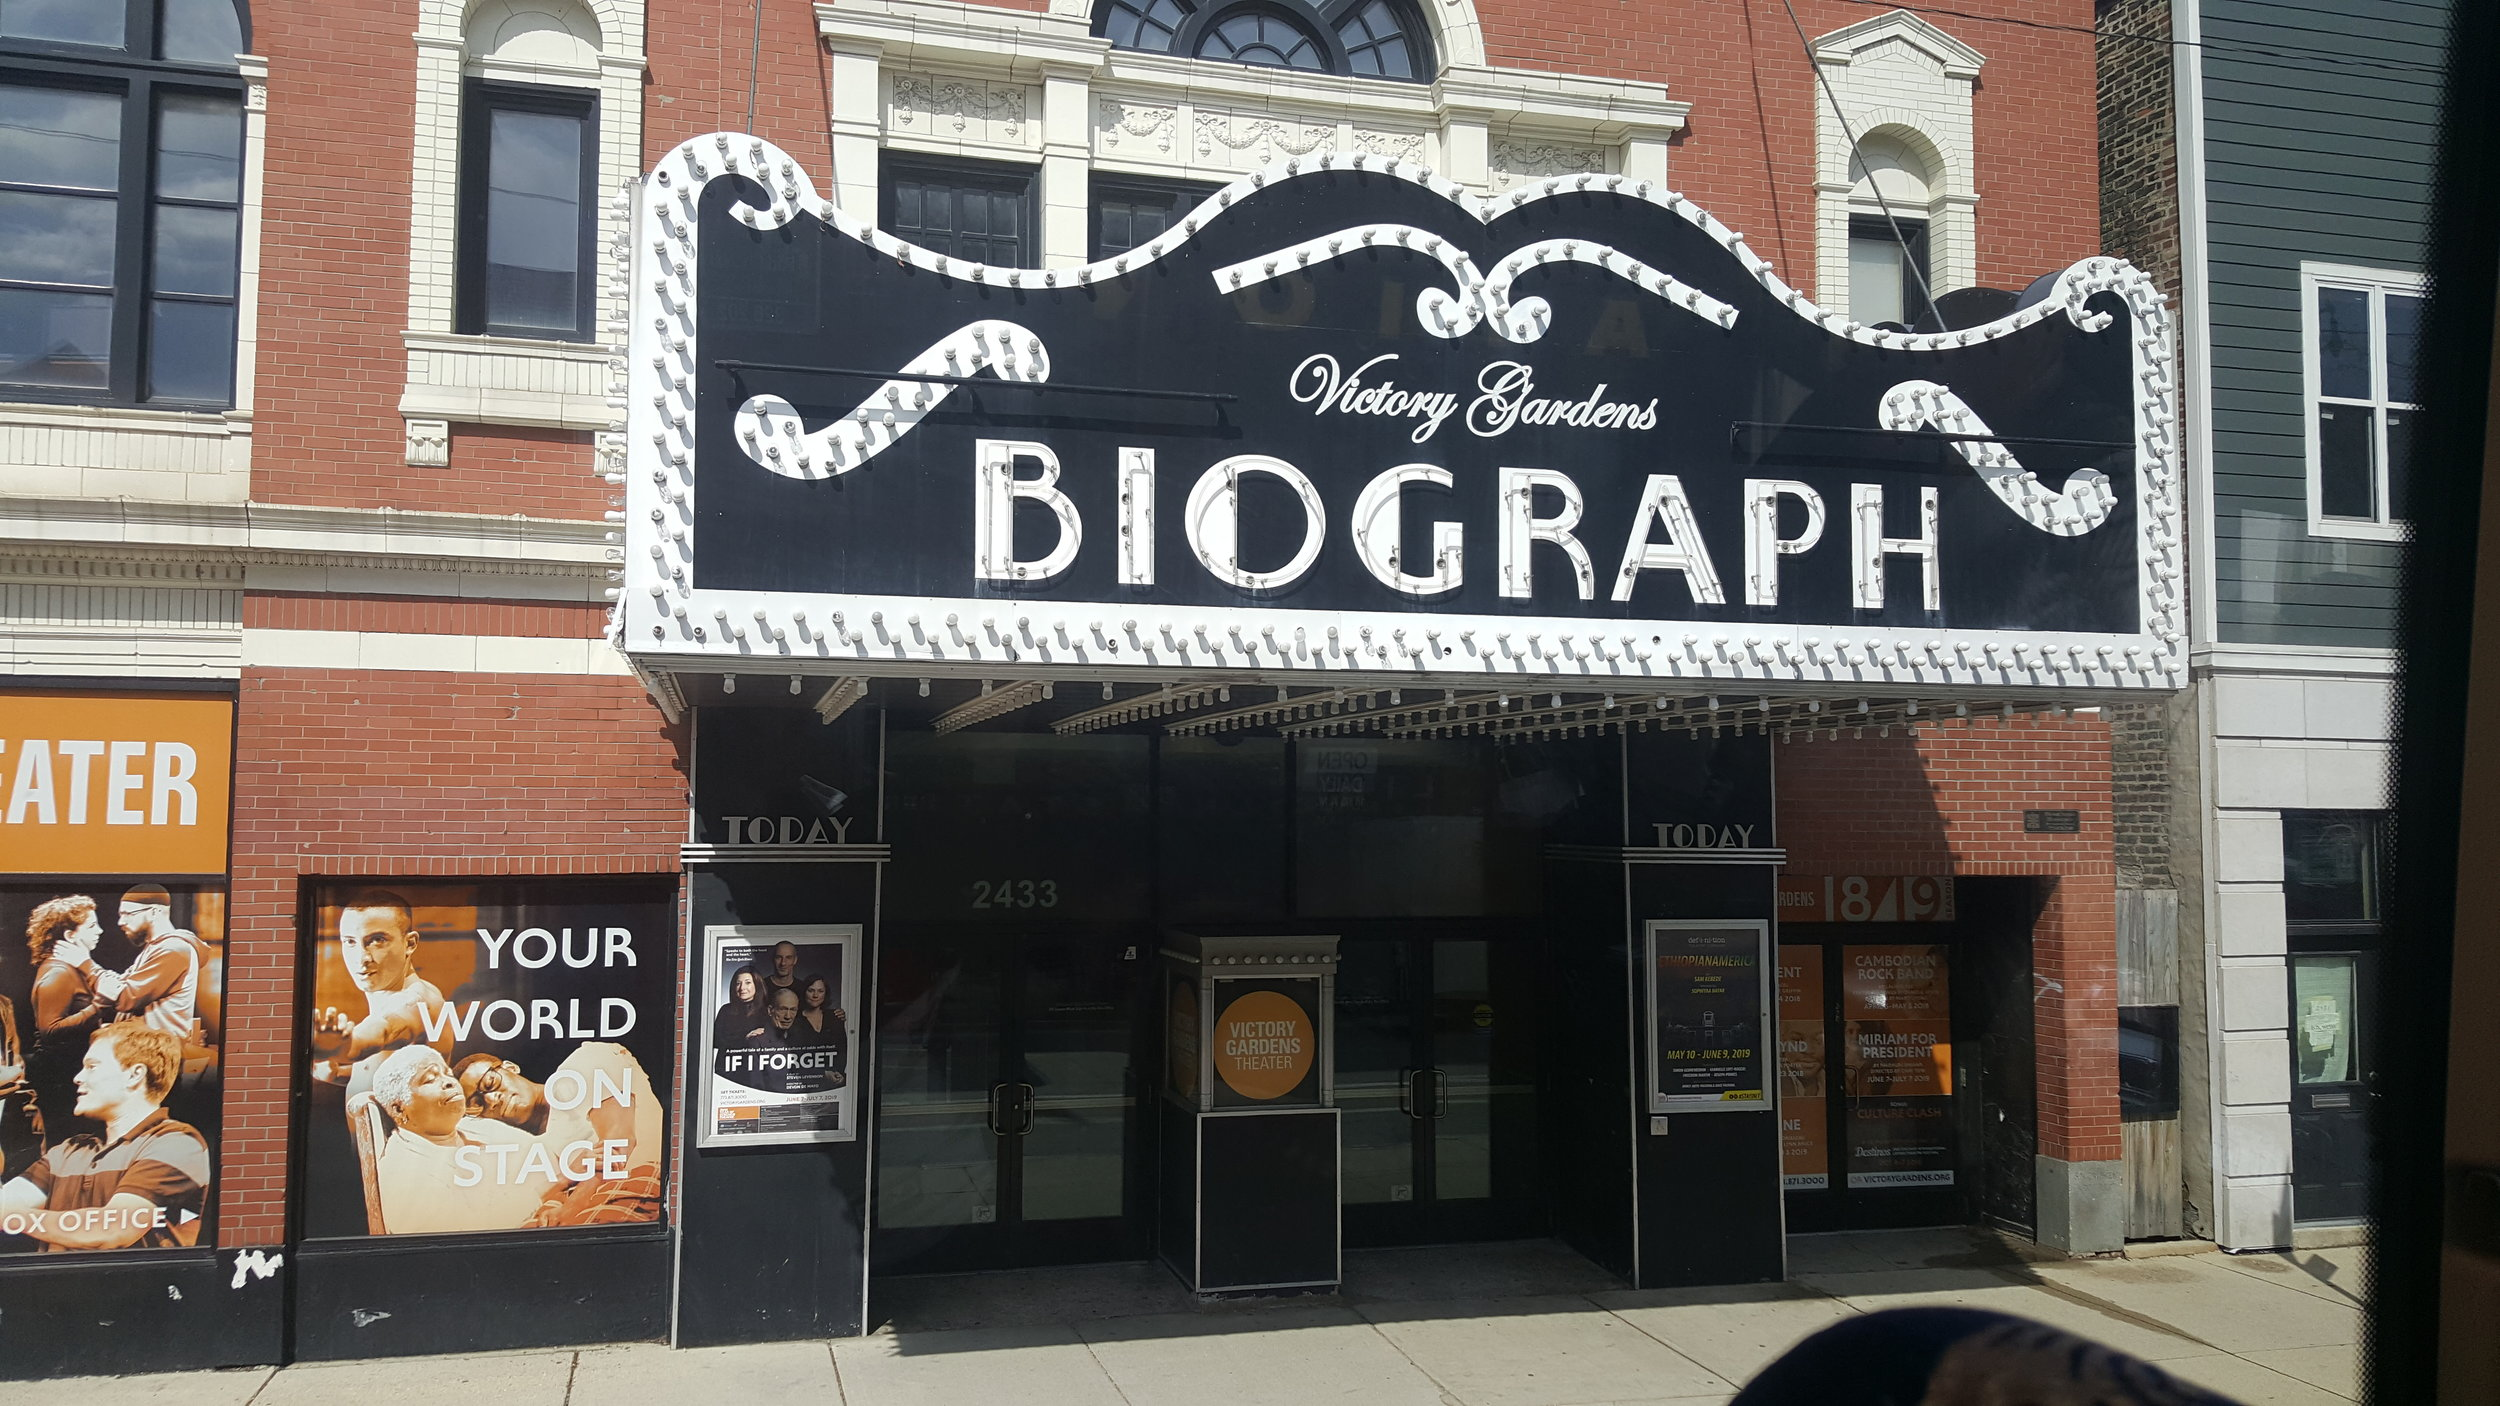 John Dillinger was gunned down by police just steps away from the Biograph Theatre.